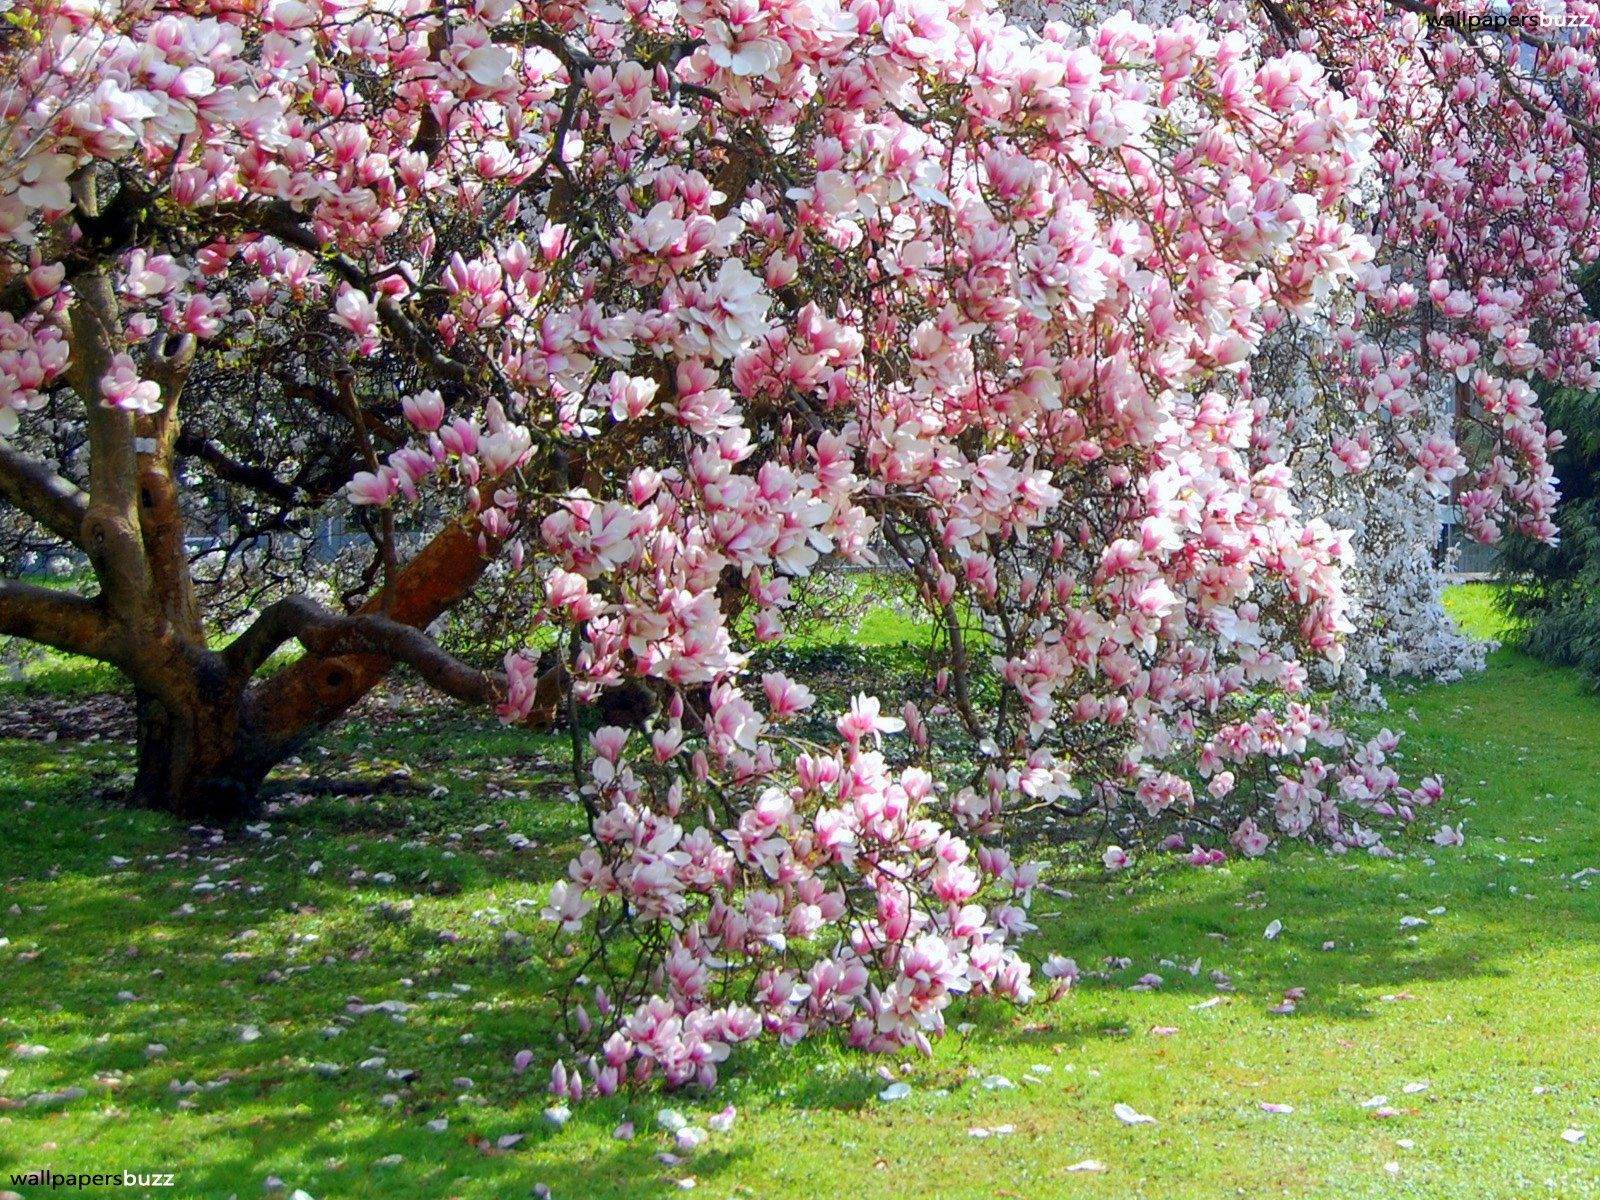 Trees Very Beautiful Blossoming Magnolia Trees With Small Pink